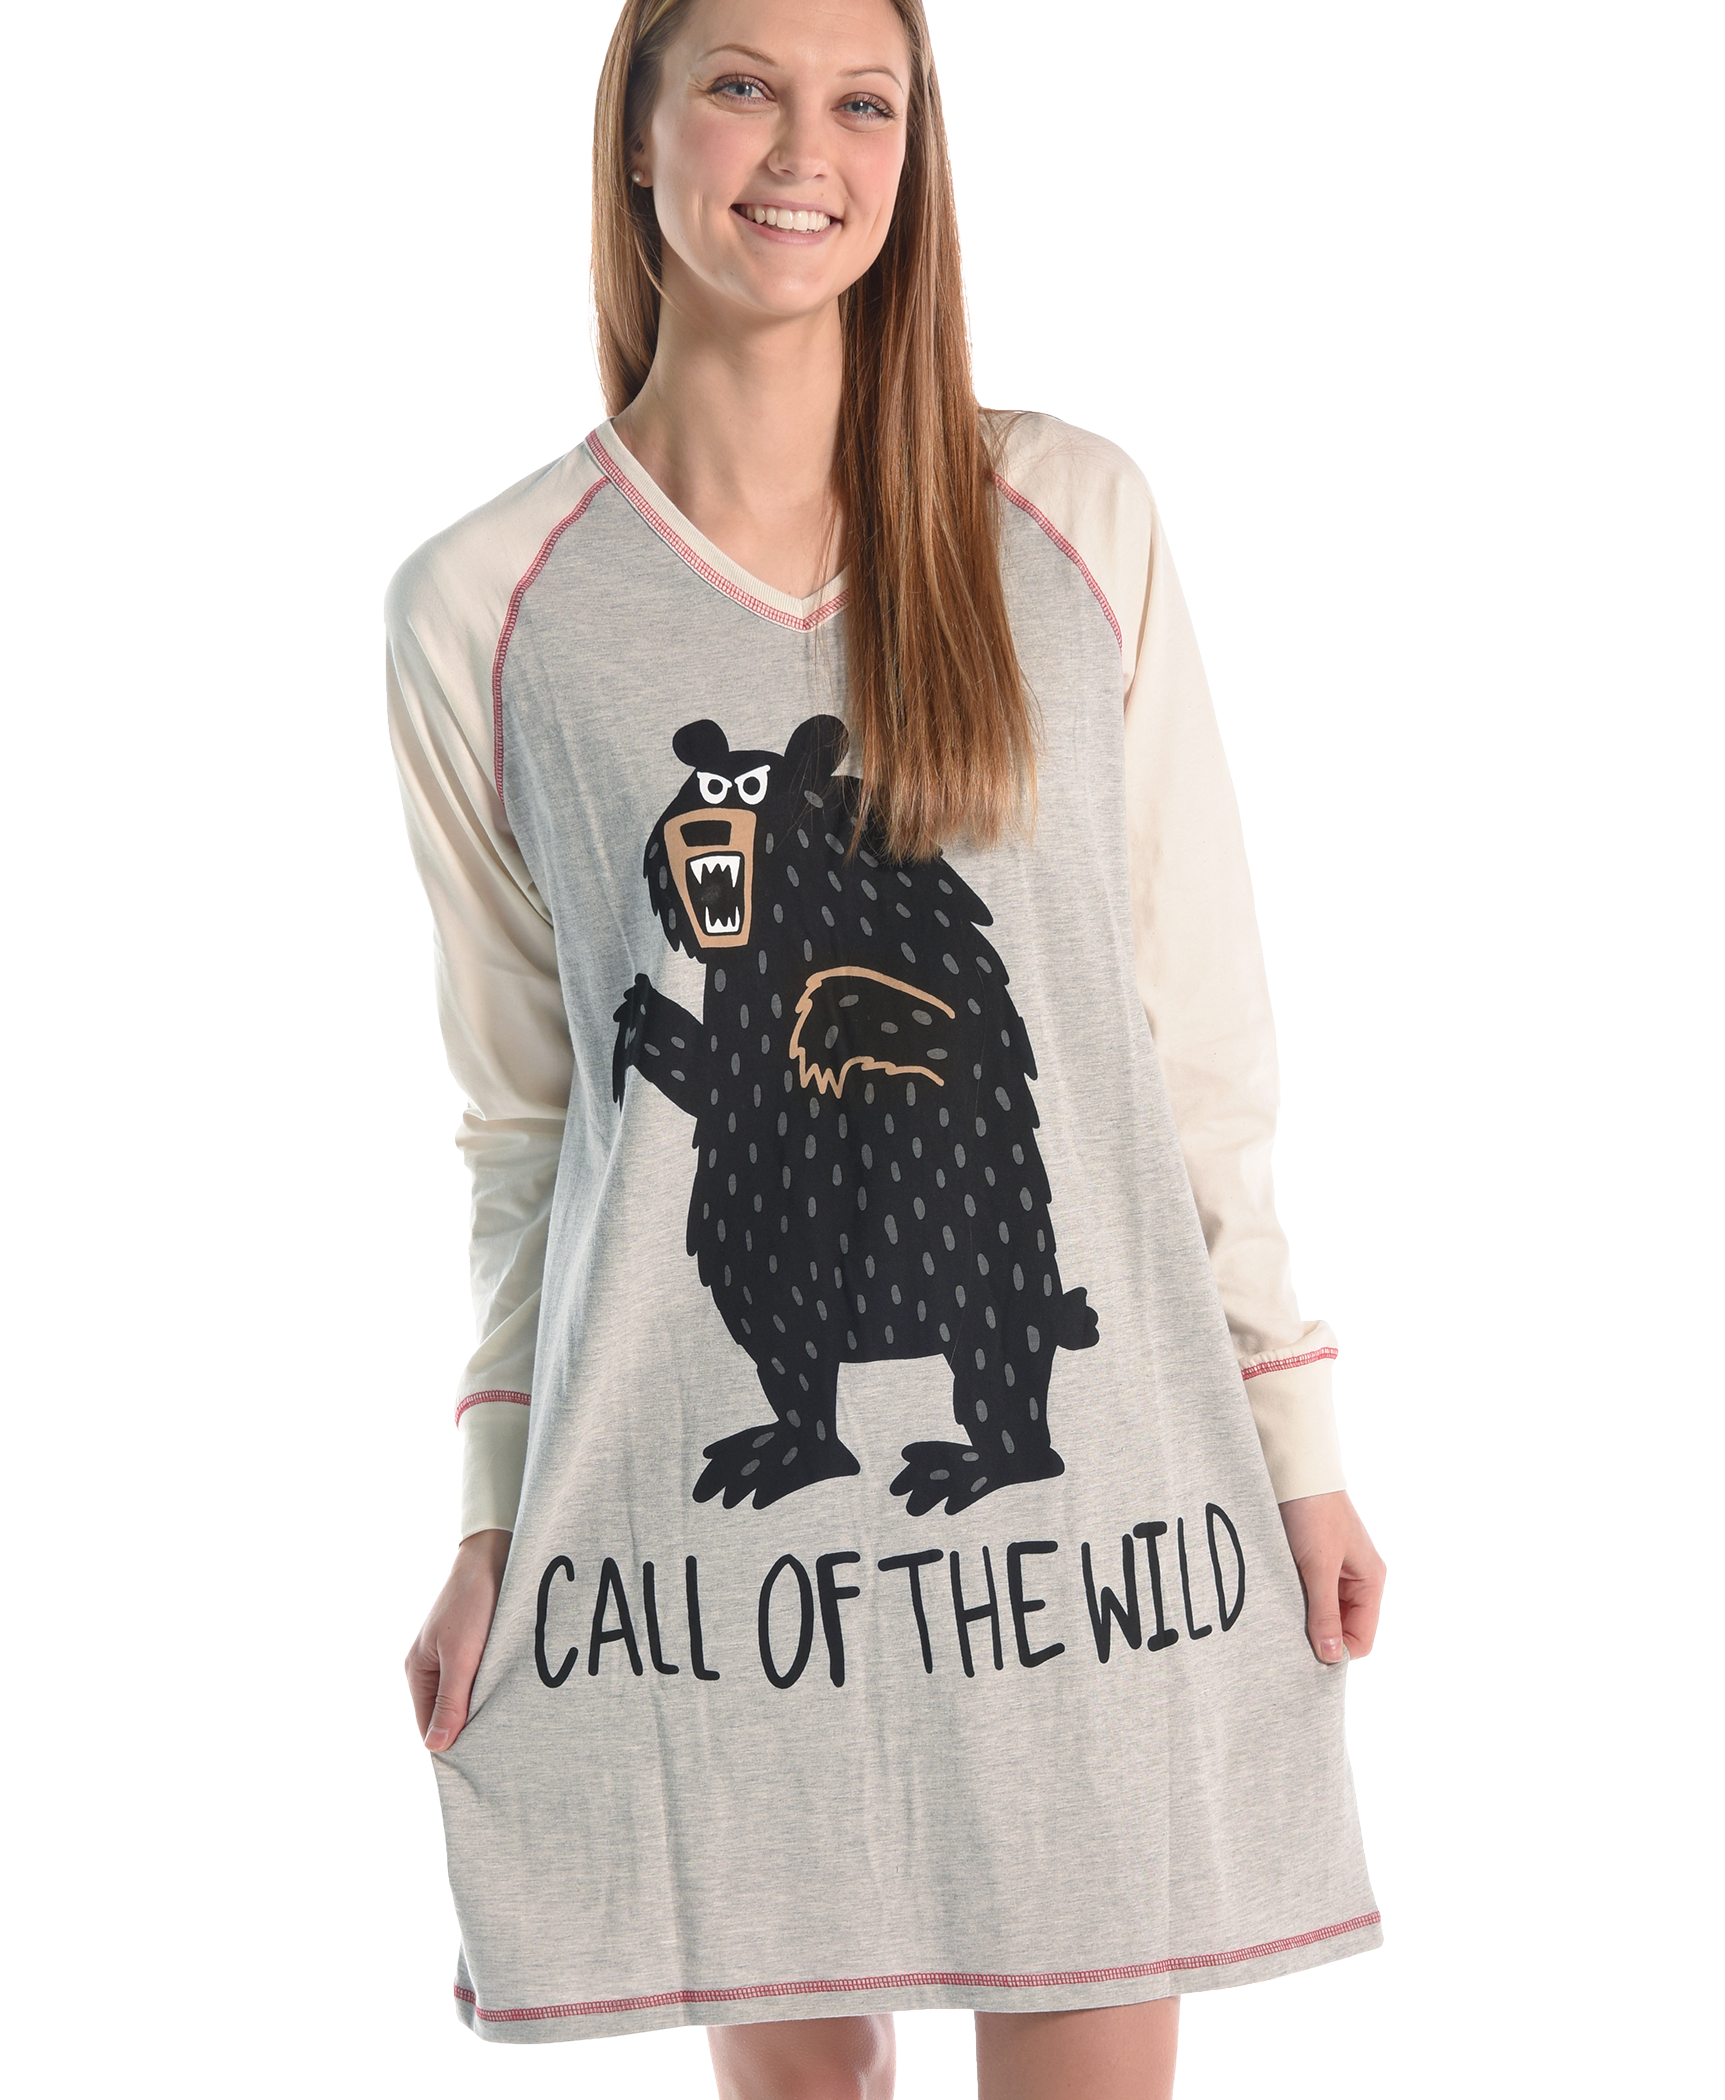 Call Of The Wild Vneck Nightshirt Lazyone